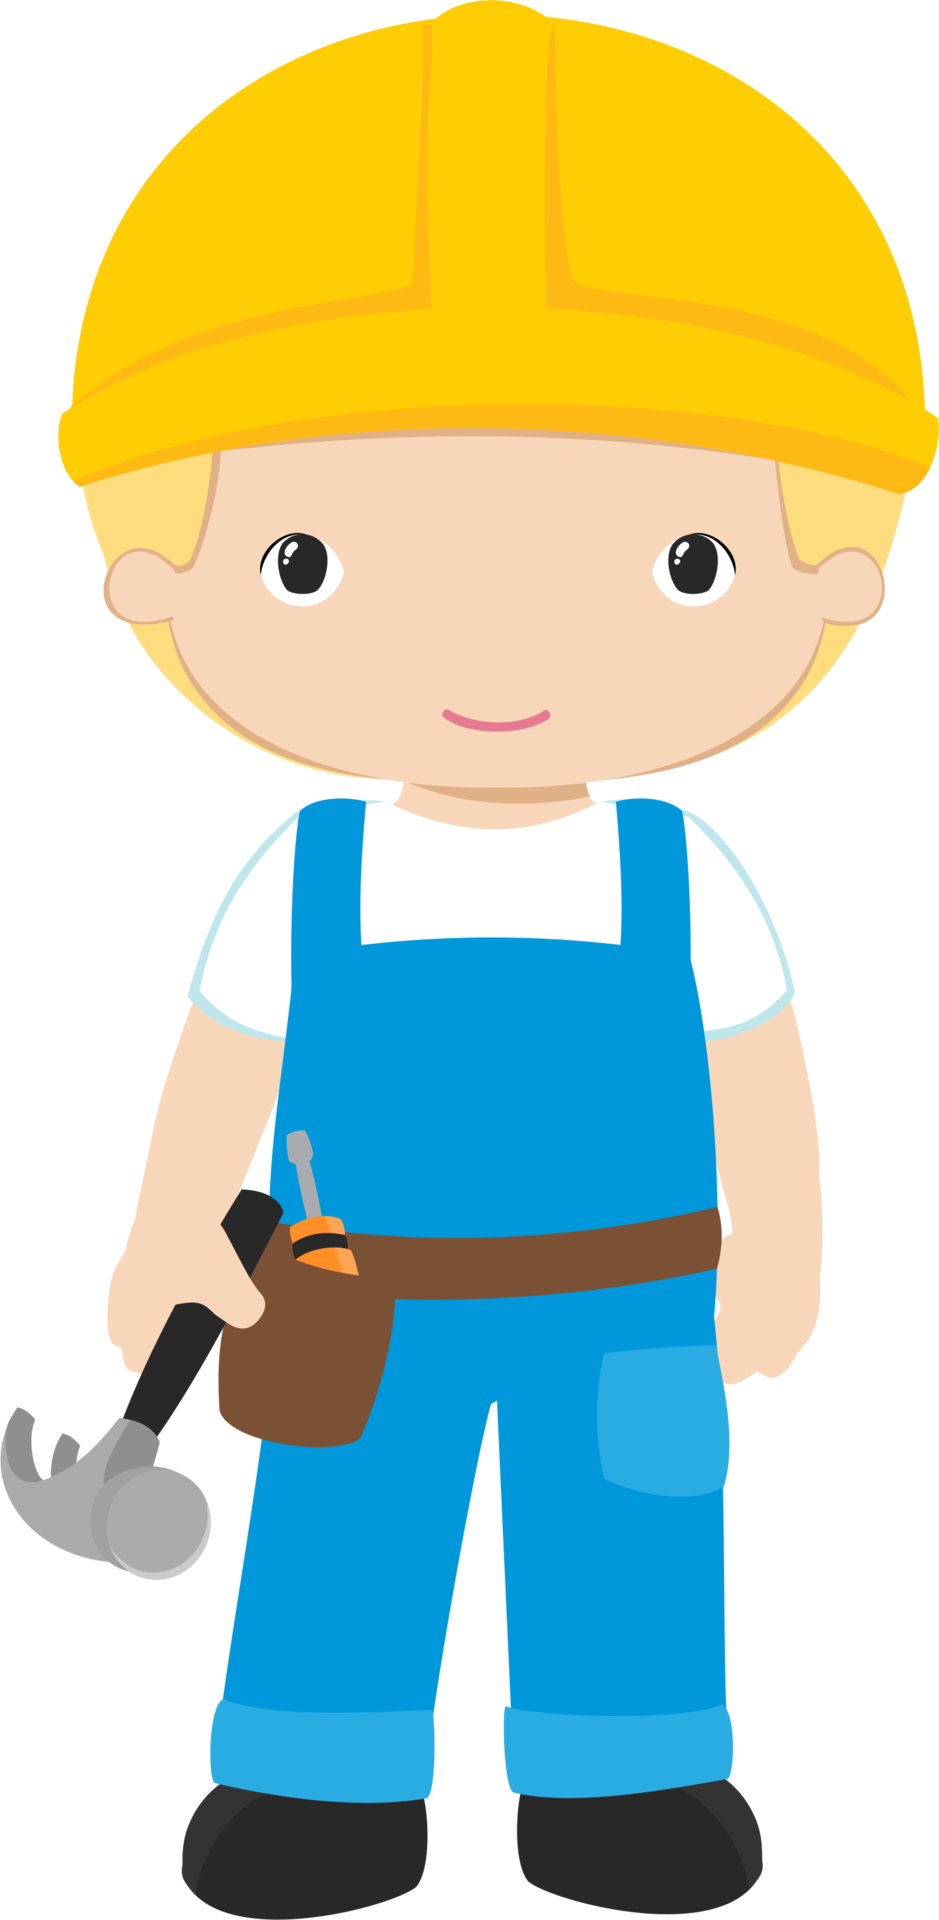 Construction worker clipart png. Shared ver todas